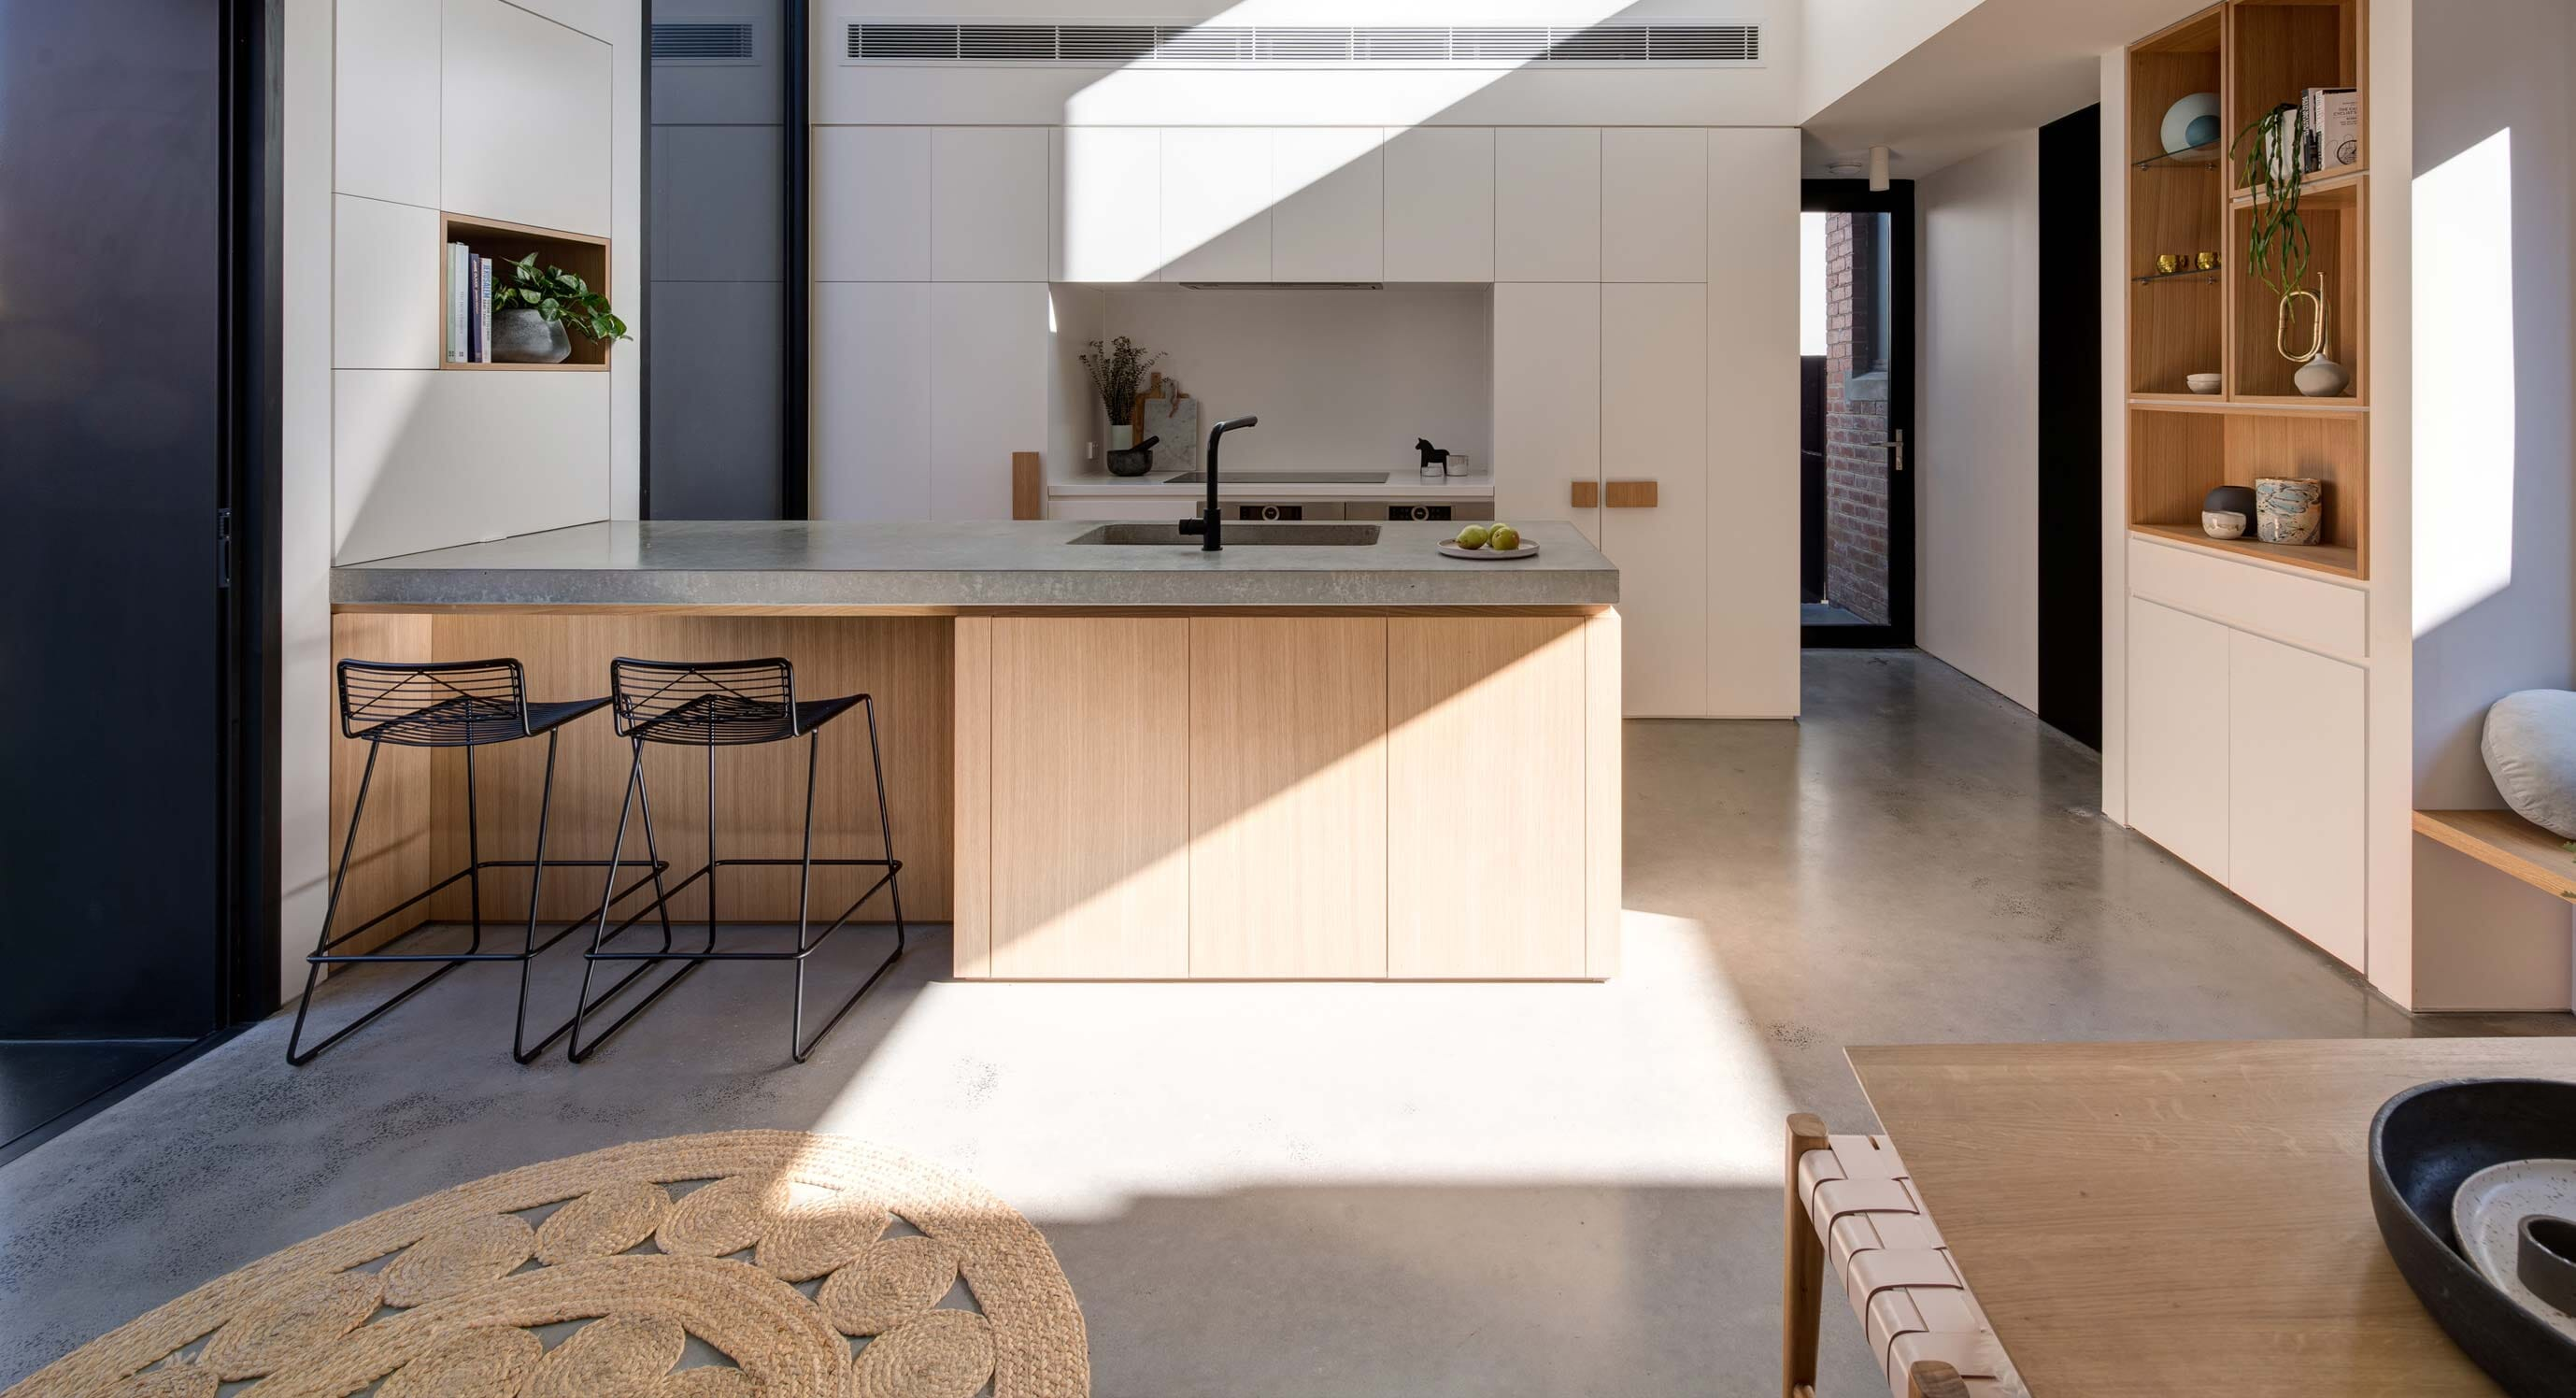 How Tetris Inspired This Contemporary Extension To A Historic Home